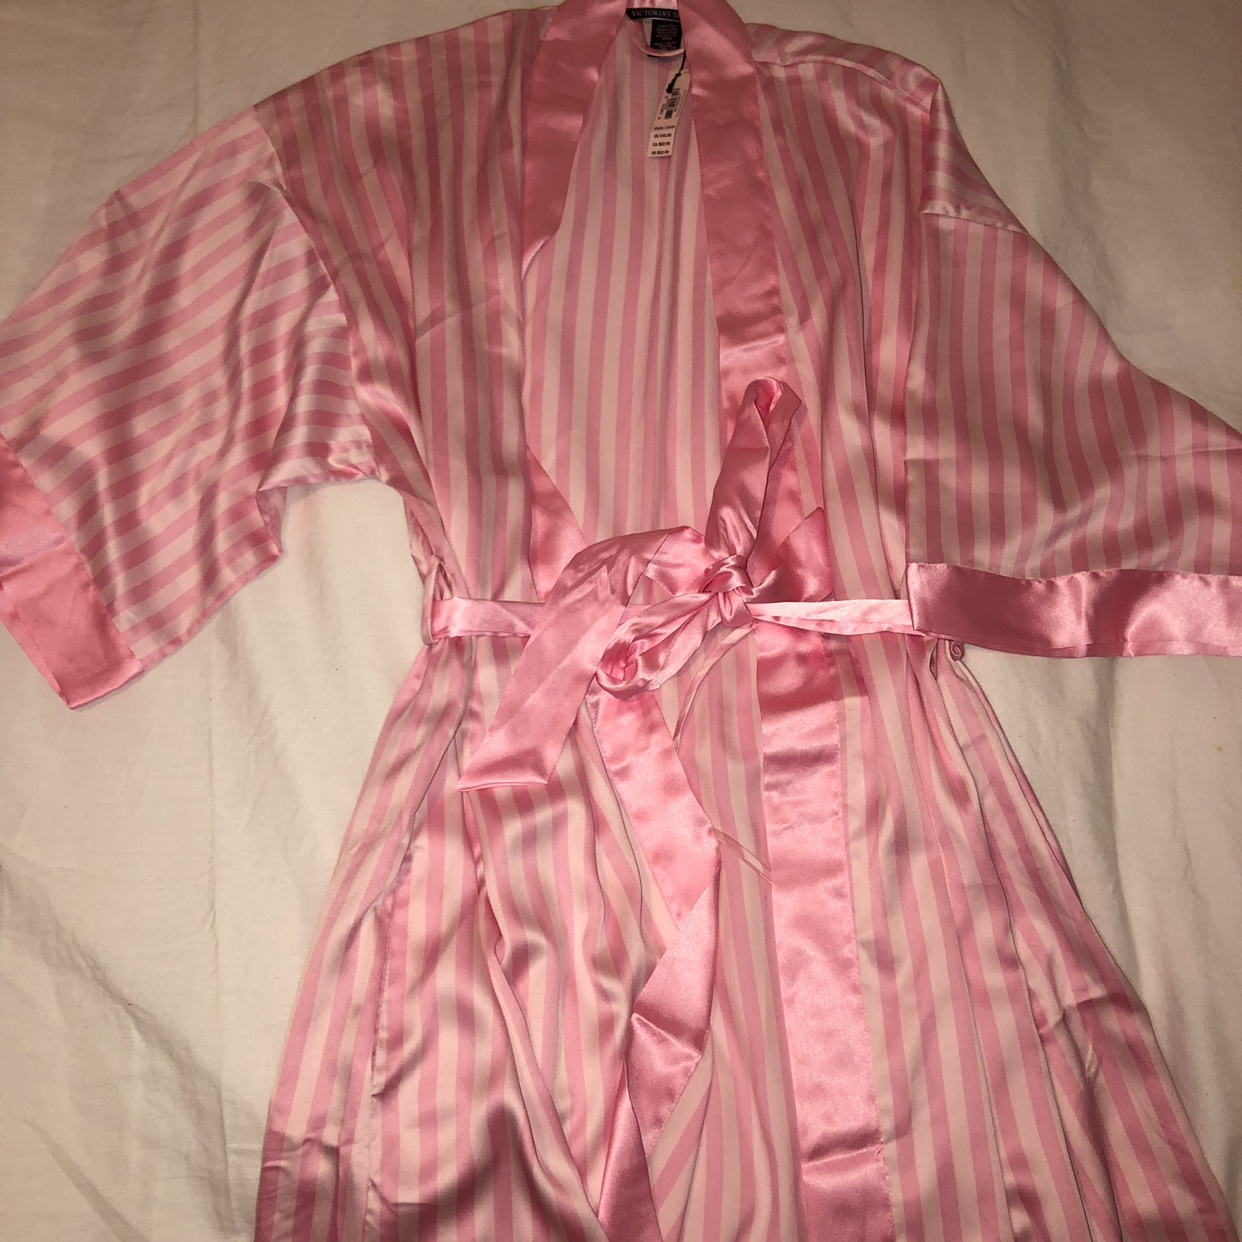 Silk Dressing Gown Victoria S Secret Factory Store